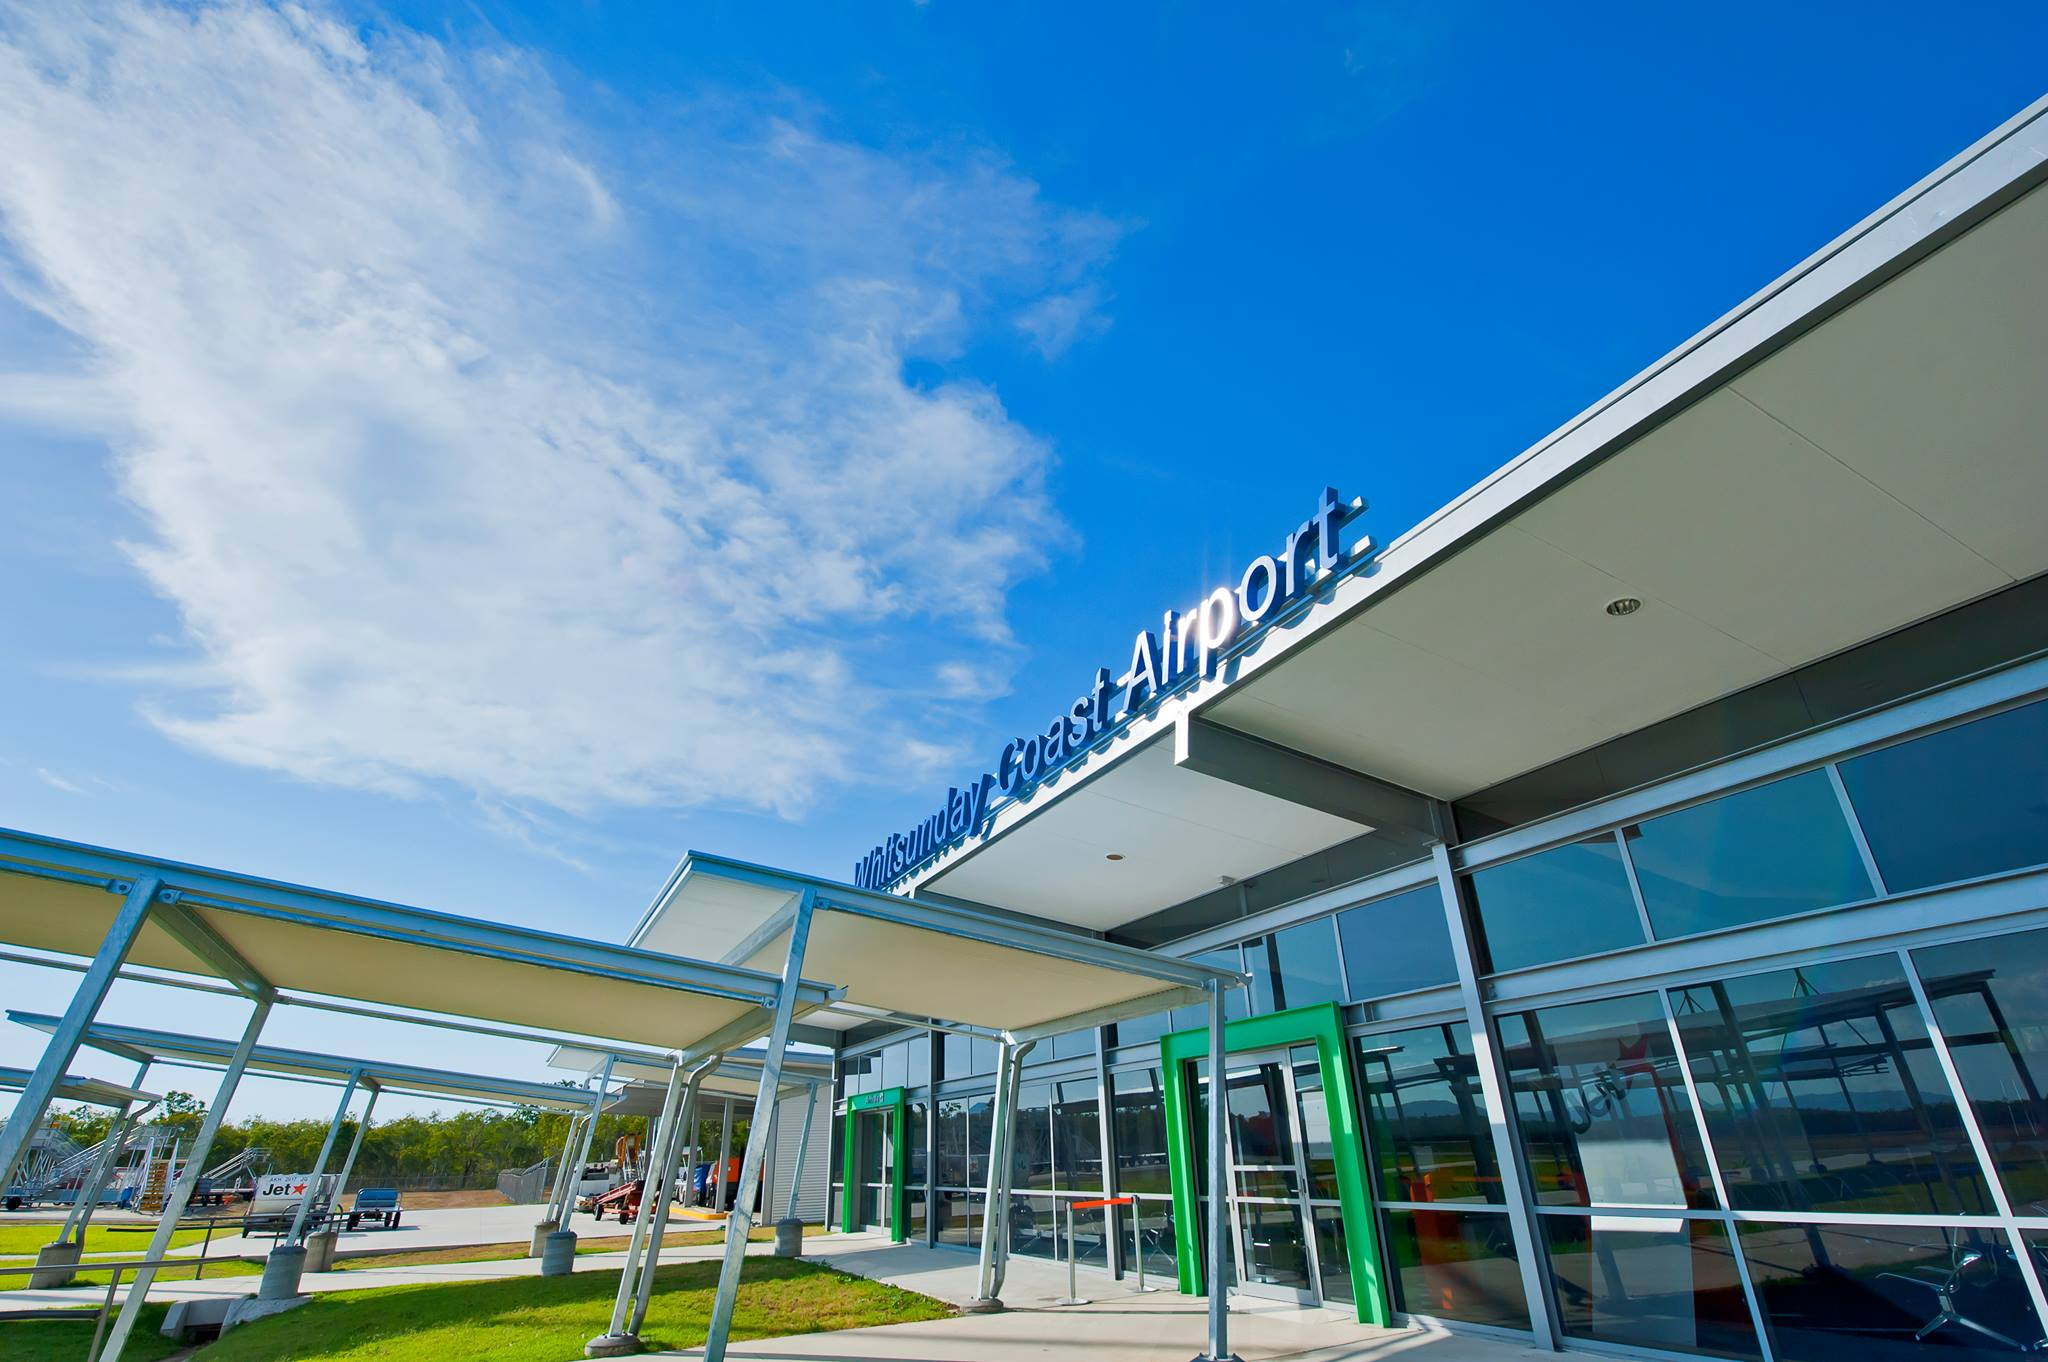 Whitsunday Cost Airport expansion contract announced